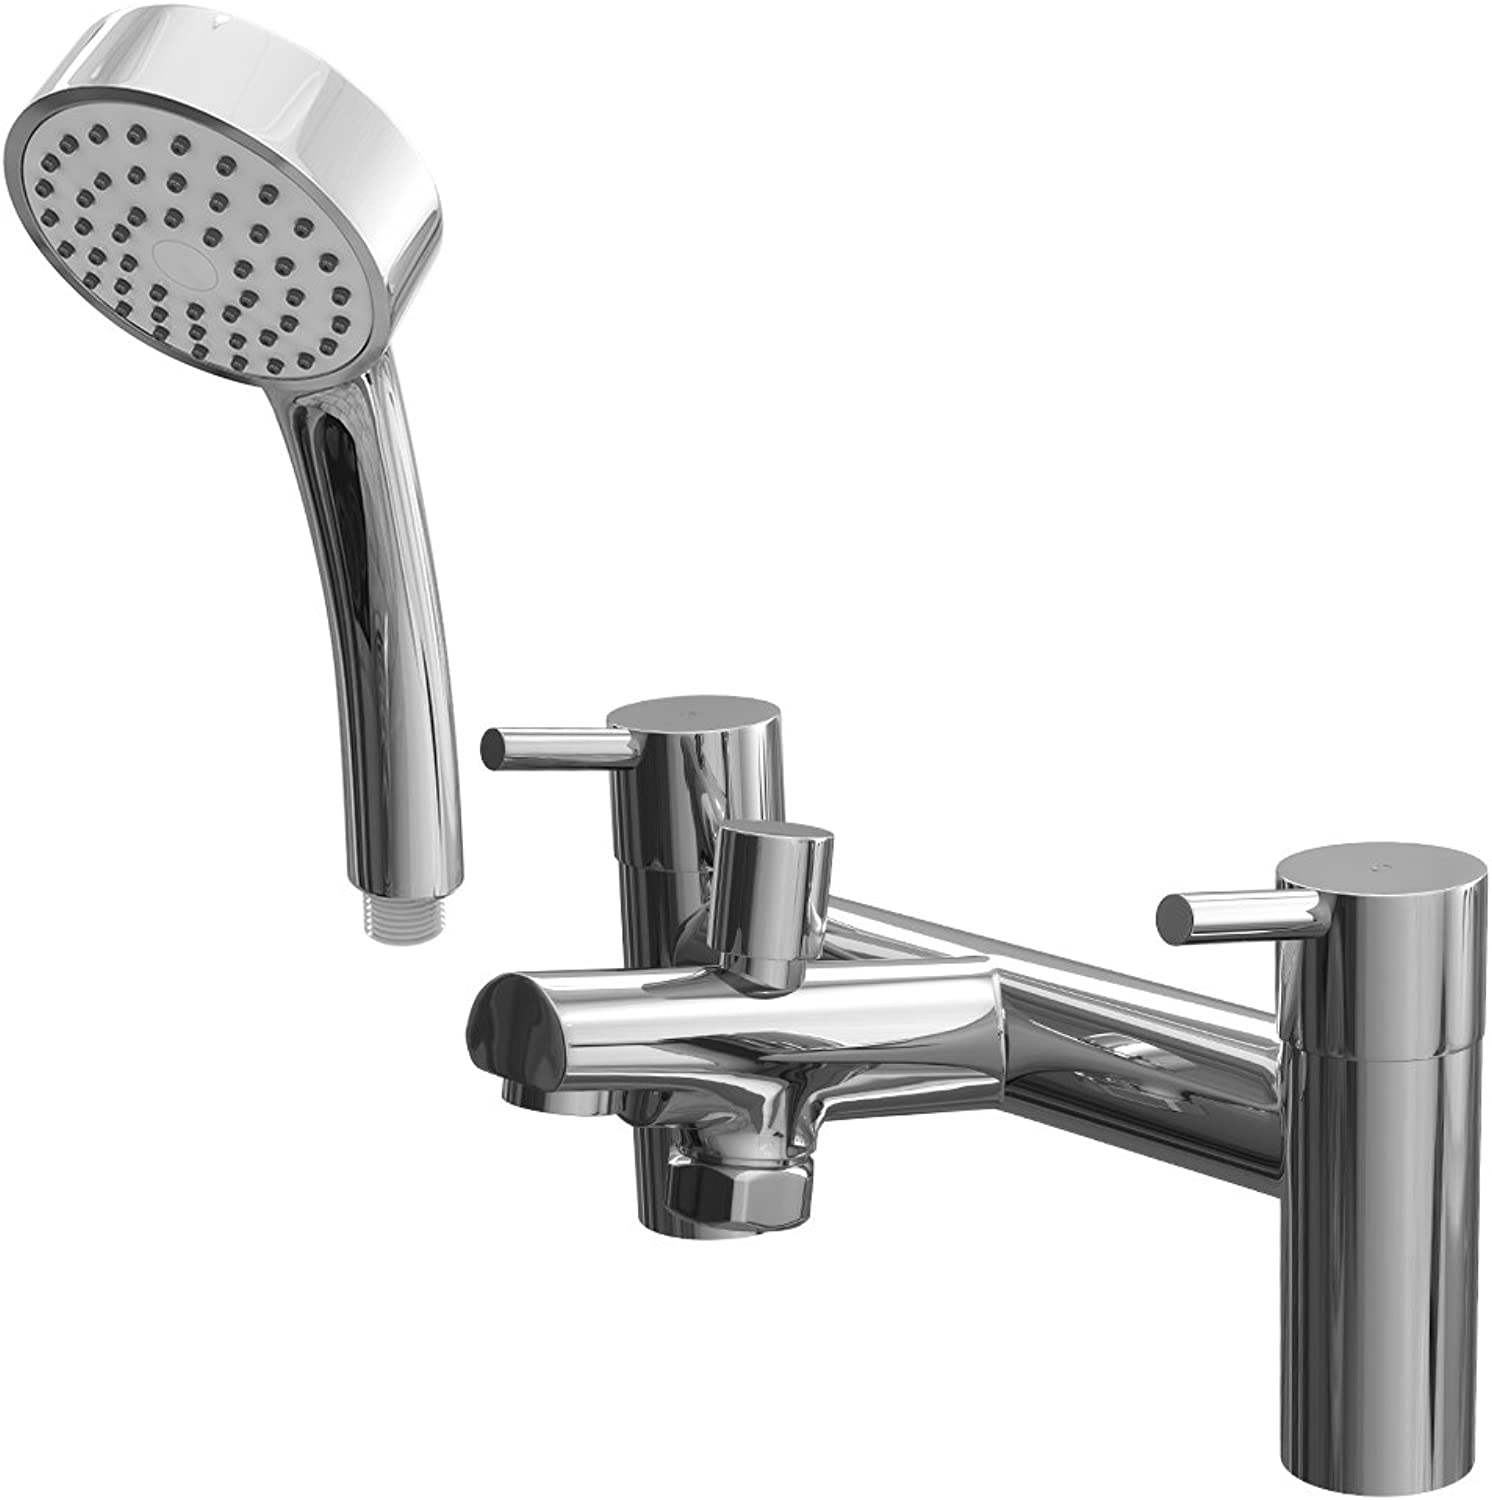 Trade In Post Dalton Bath Shower Mixer Faucet Tap Including Hose and Handset